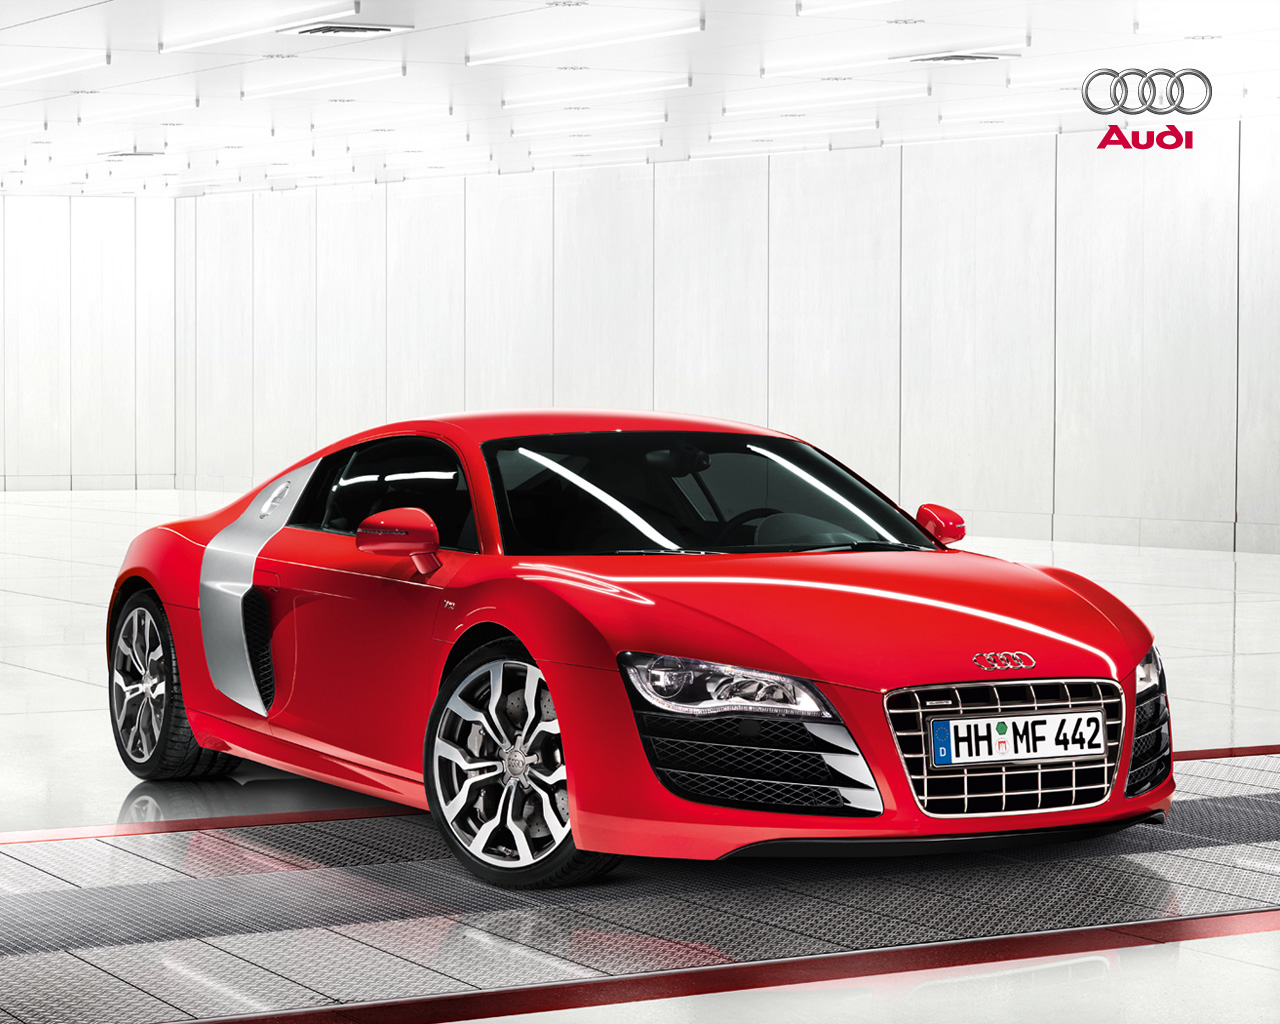 audi r8 spyder 5 2 fsi quattro 2011 cars and motorcycles. Black Bedroom Furniture Sets. Home Design Ideas